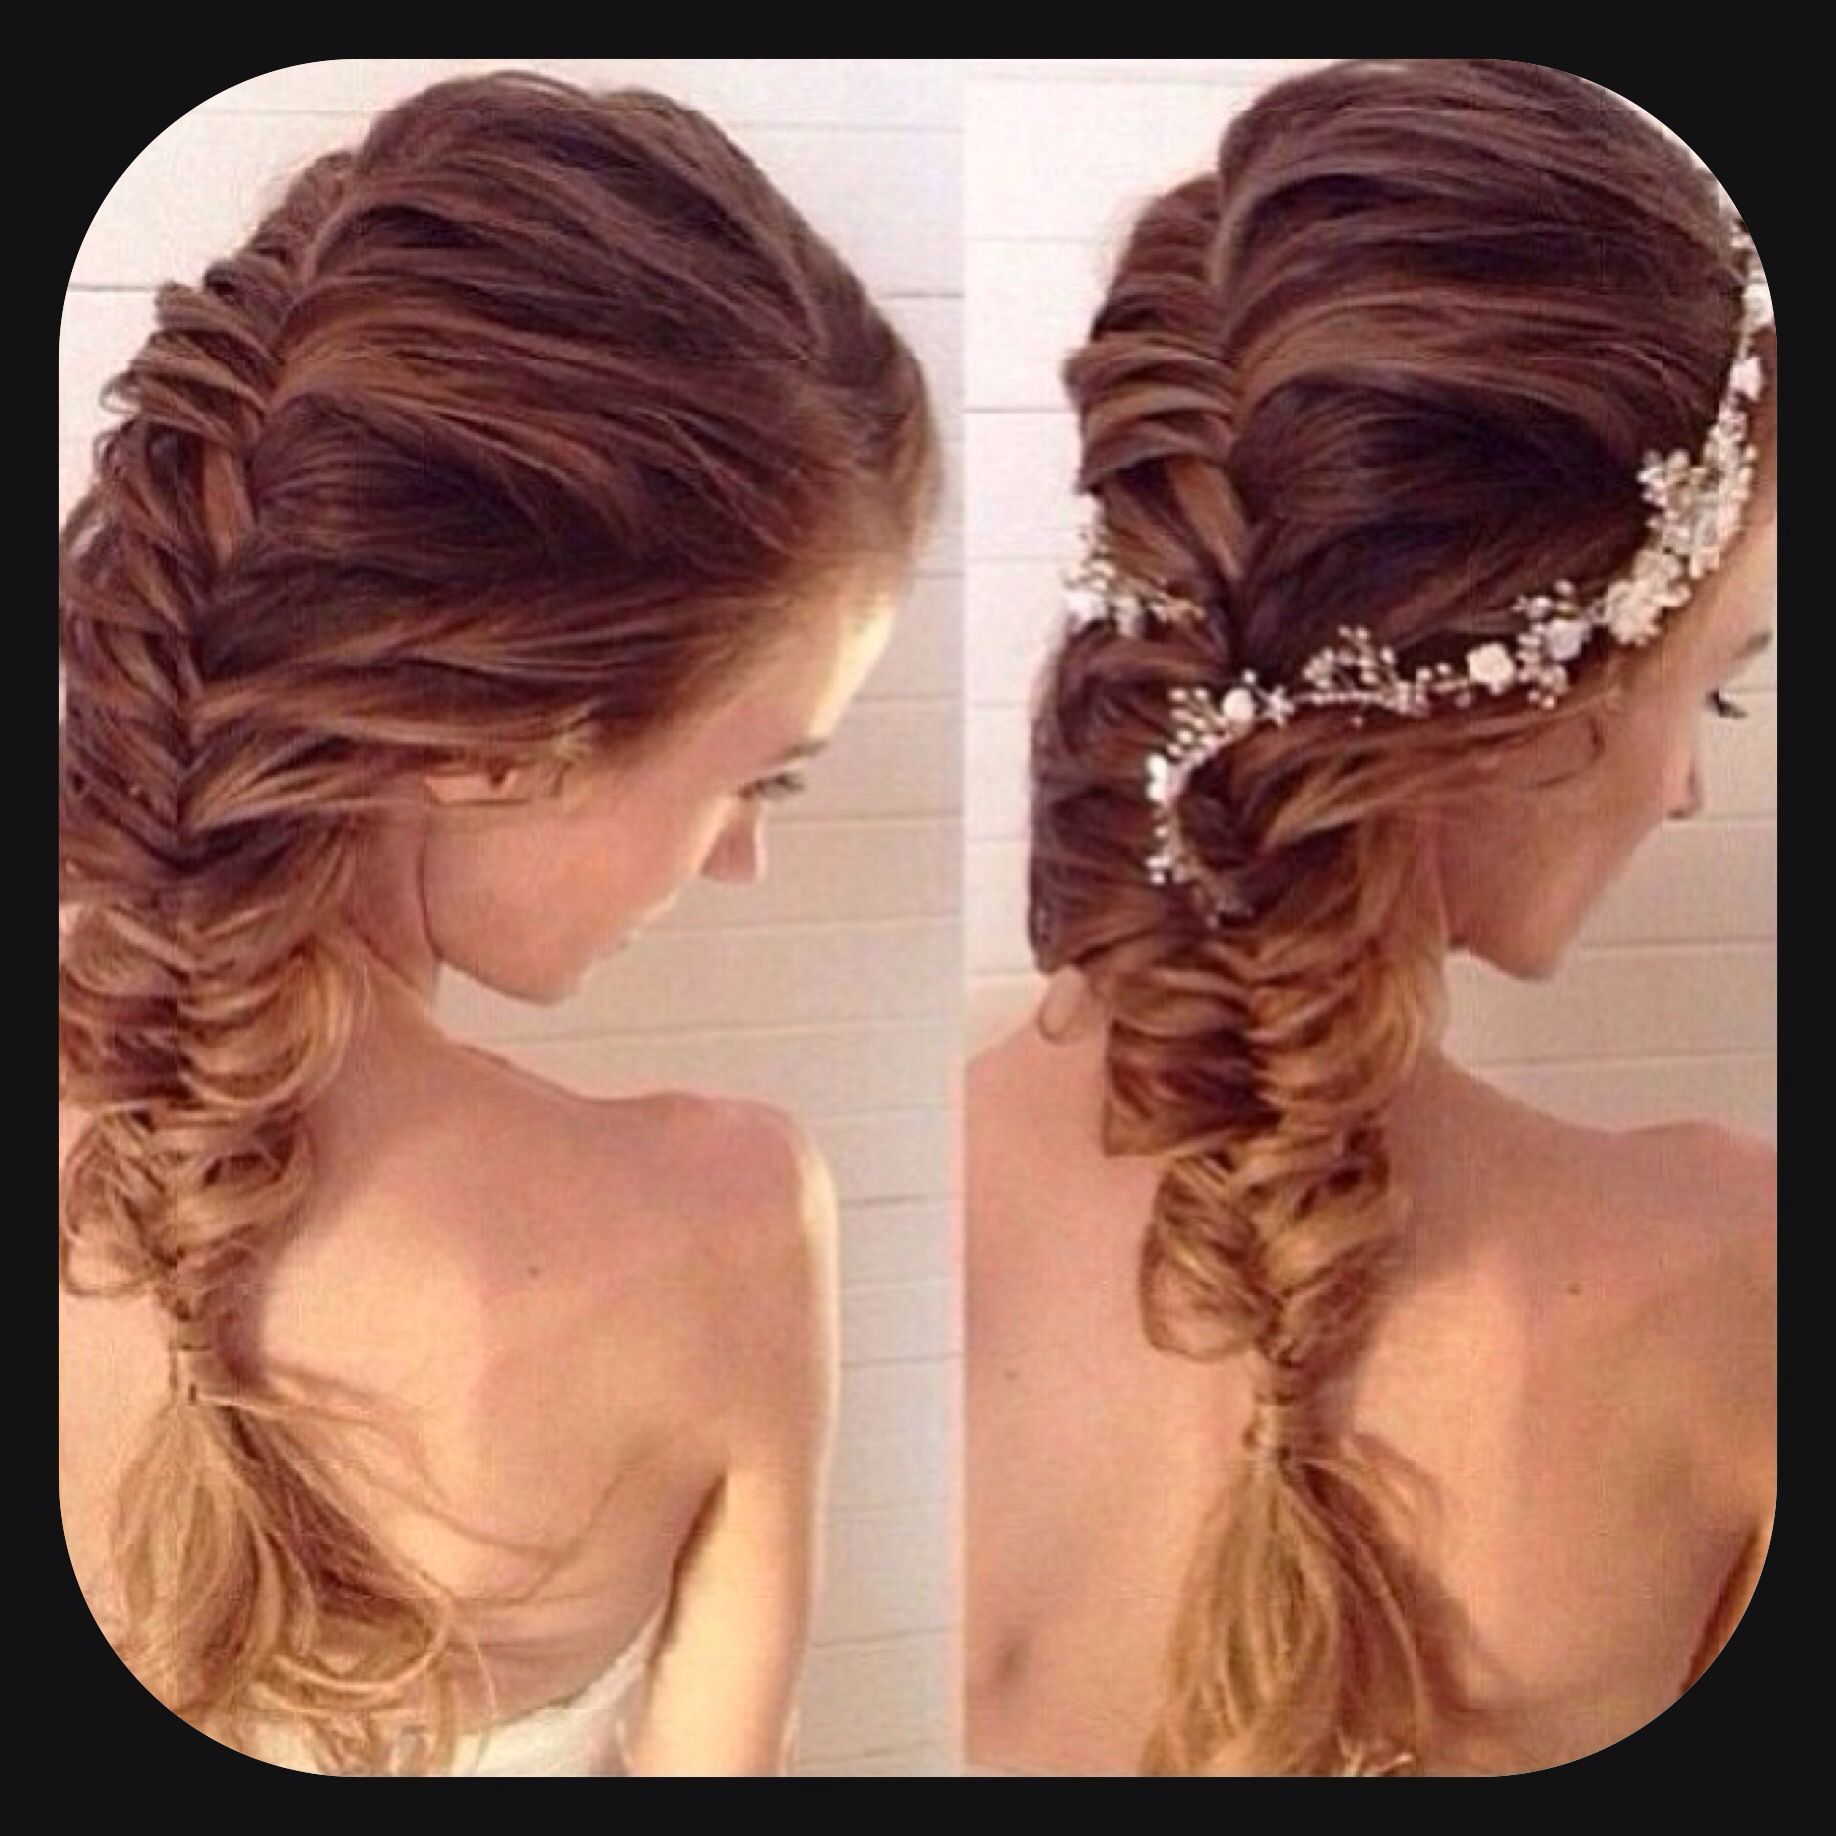 965 Best Wedding Hairstyles Images On Pinterest: Best 25+ Romantic Bridal Hair Ideas On Pinterest